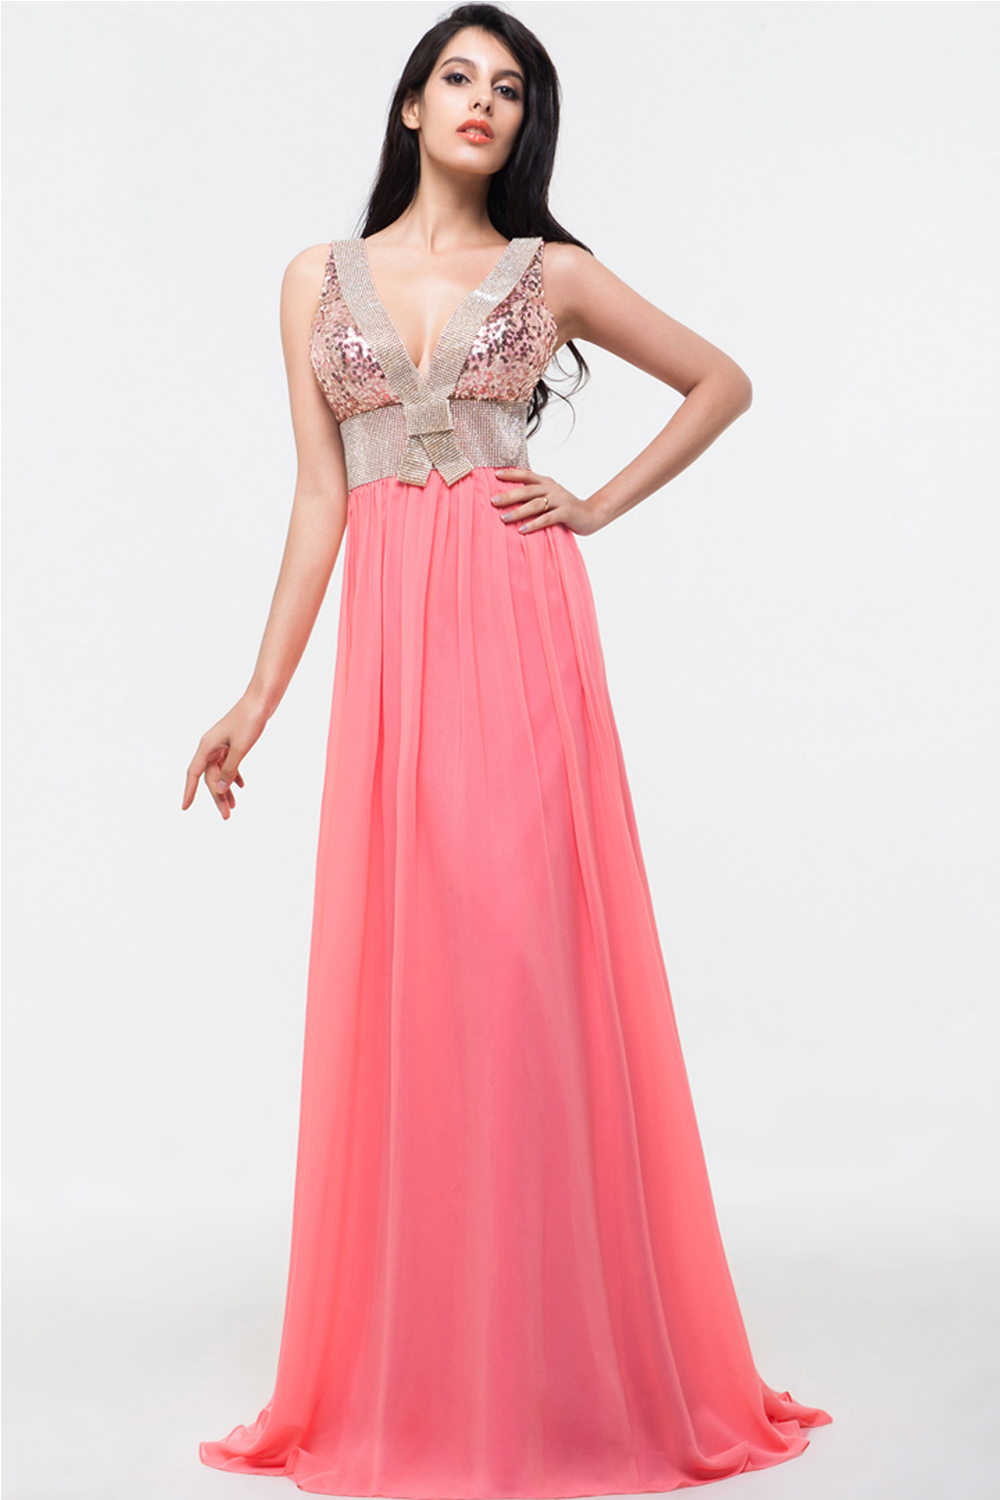 A-Line/Princess V-Neck Sweep Train Chiffon Prom Dresses With Sequins